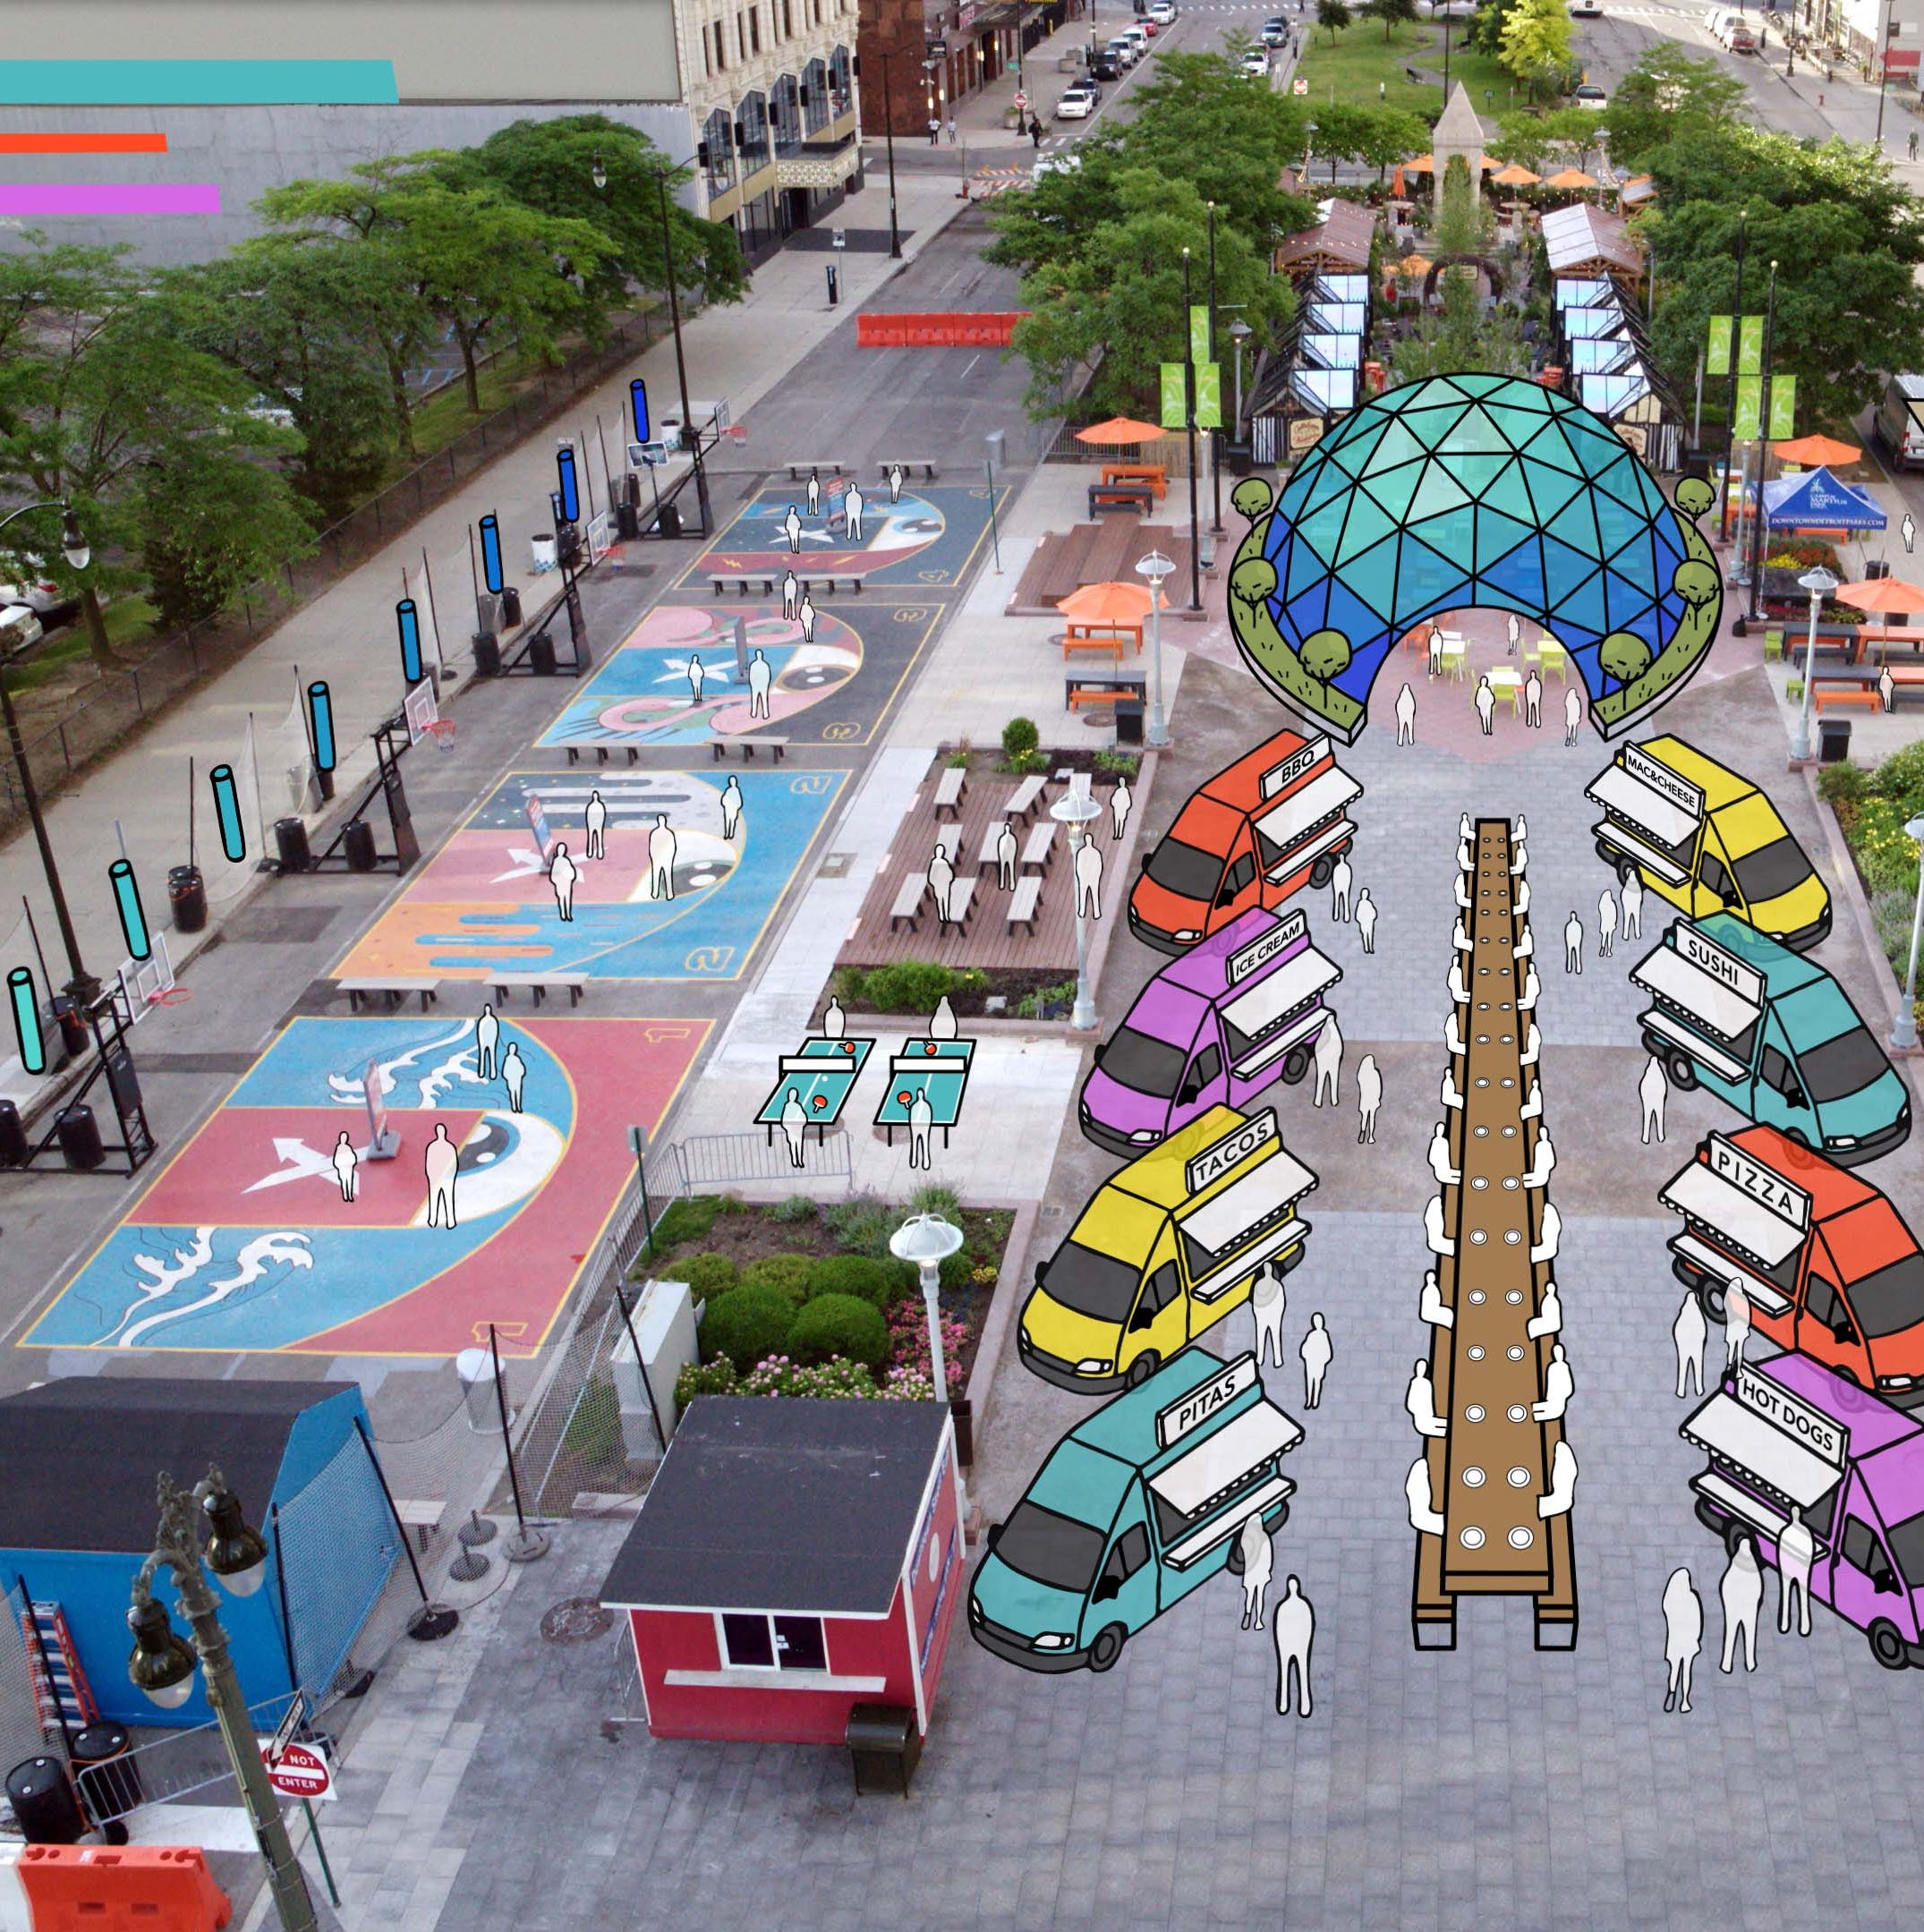 The 2020 Detroit auto show will sprawl into Campus Martius, where showgoers can enjoy Detroit's resurgent social and restaurant scene.